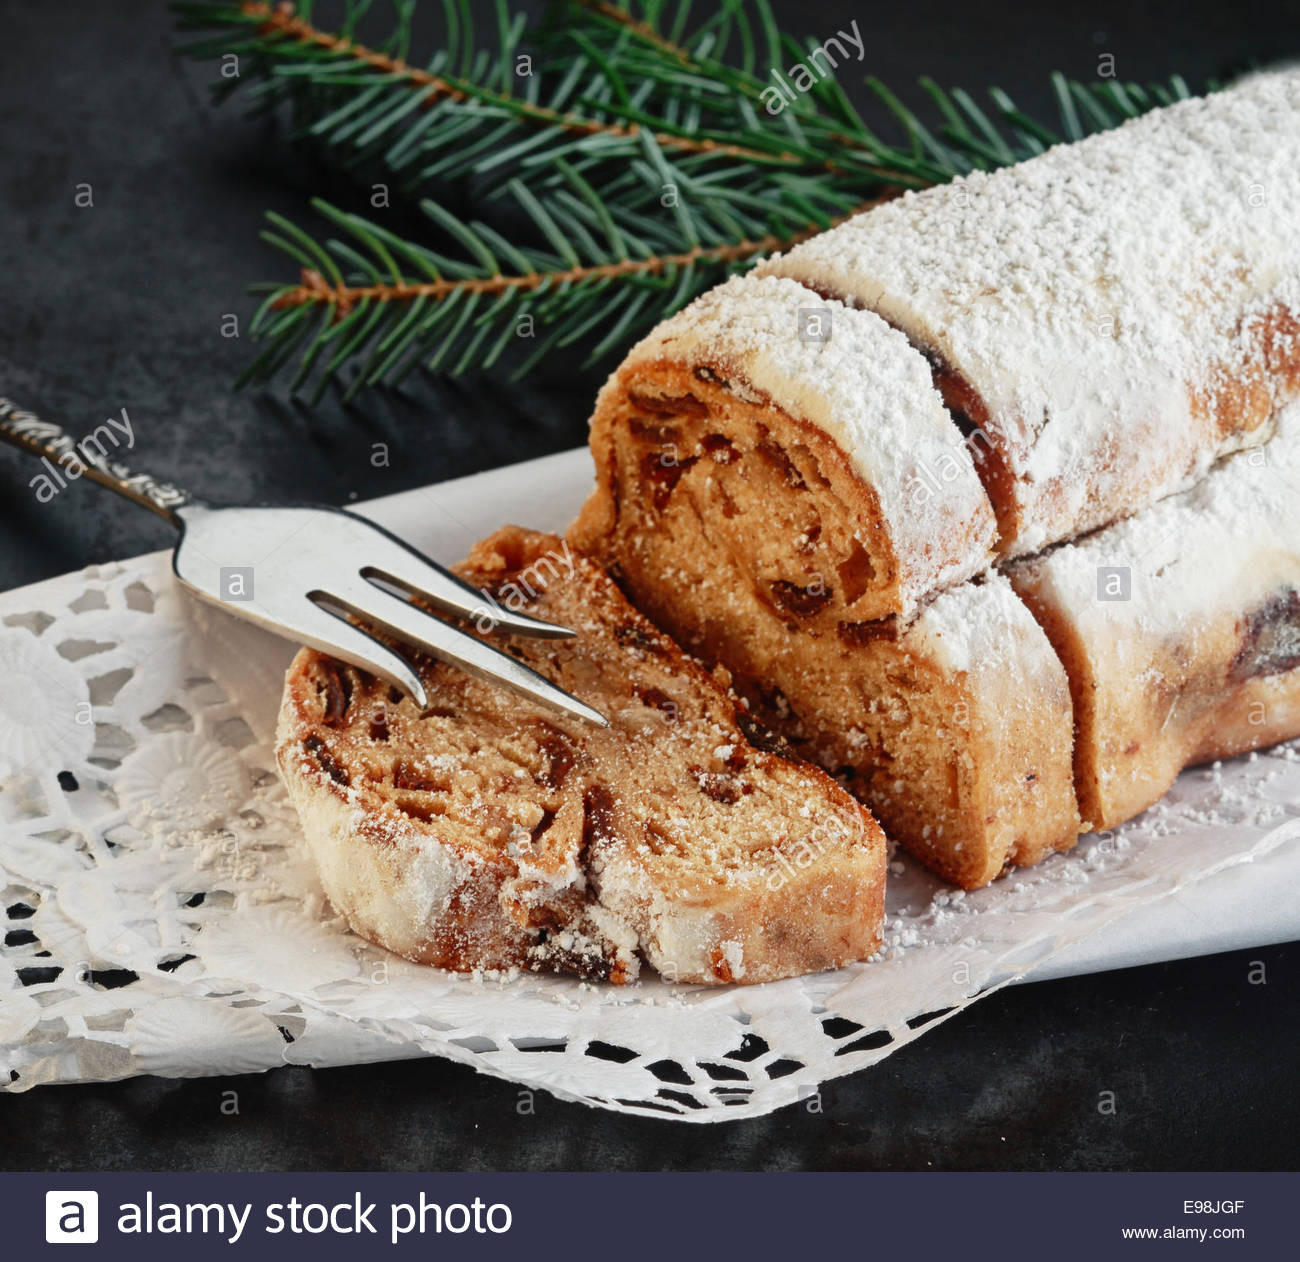 Italian Sweet Bread Loaf Made For Christmas  Loaf Bread Art Stock s & Loaf Bread Art Stock